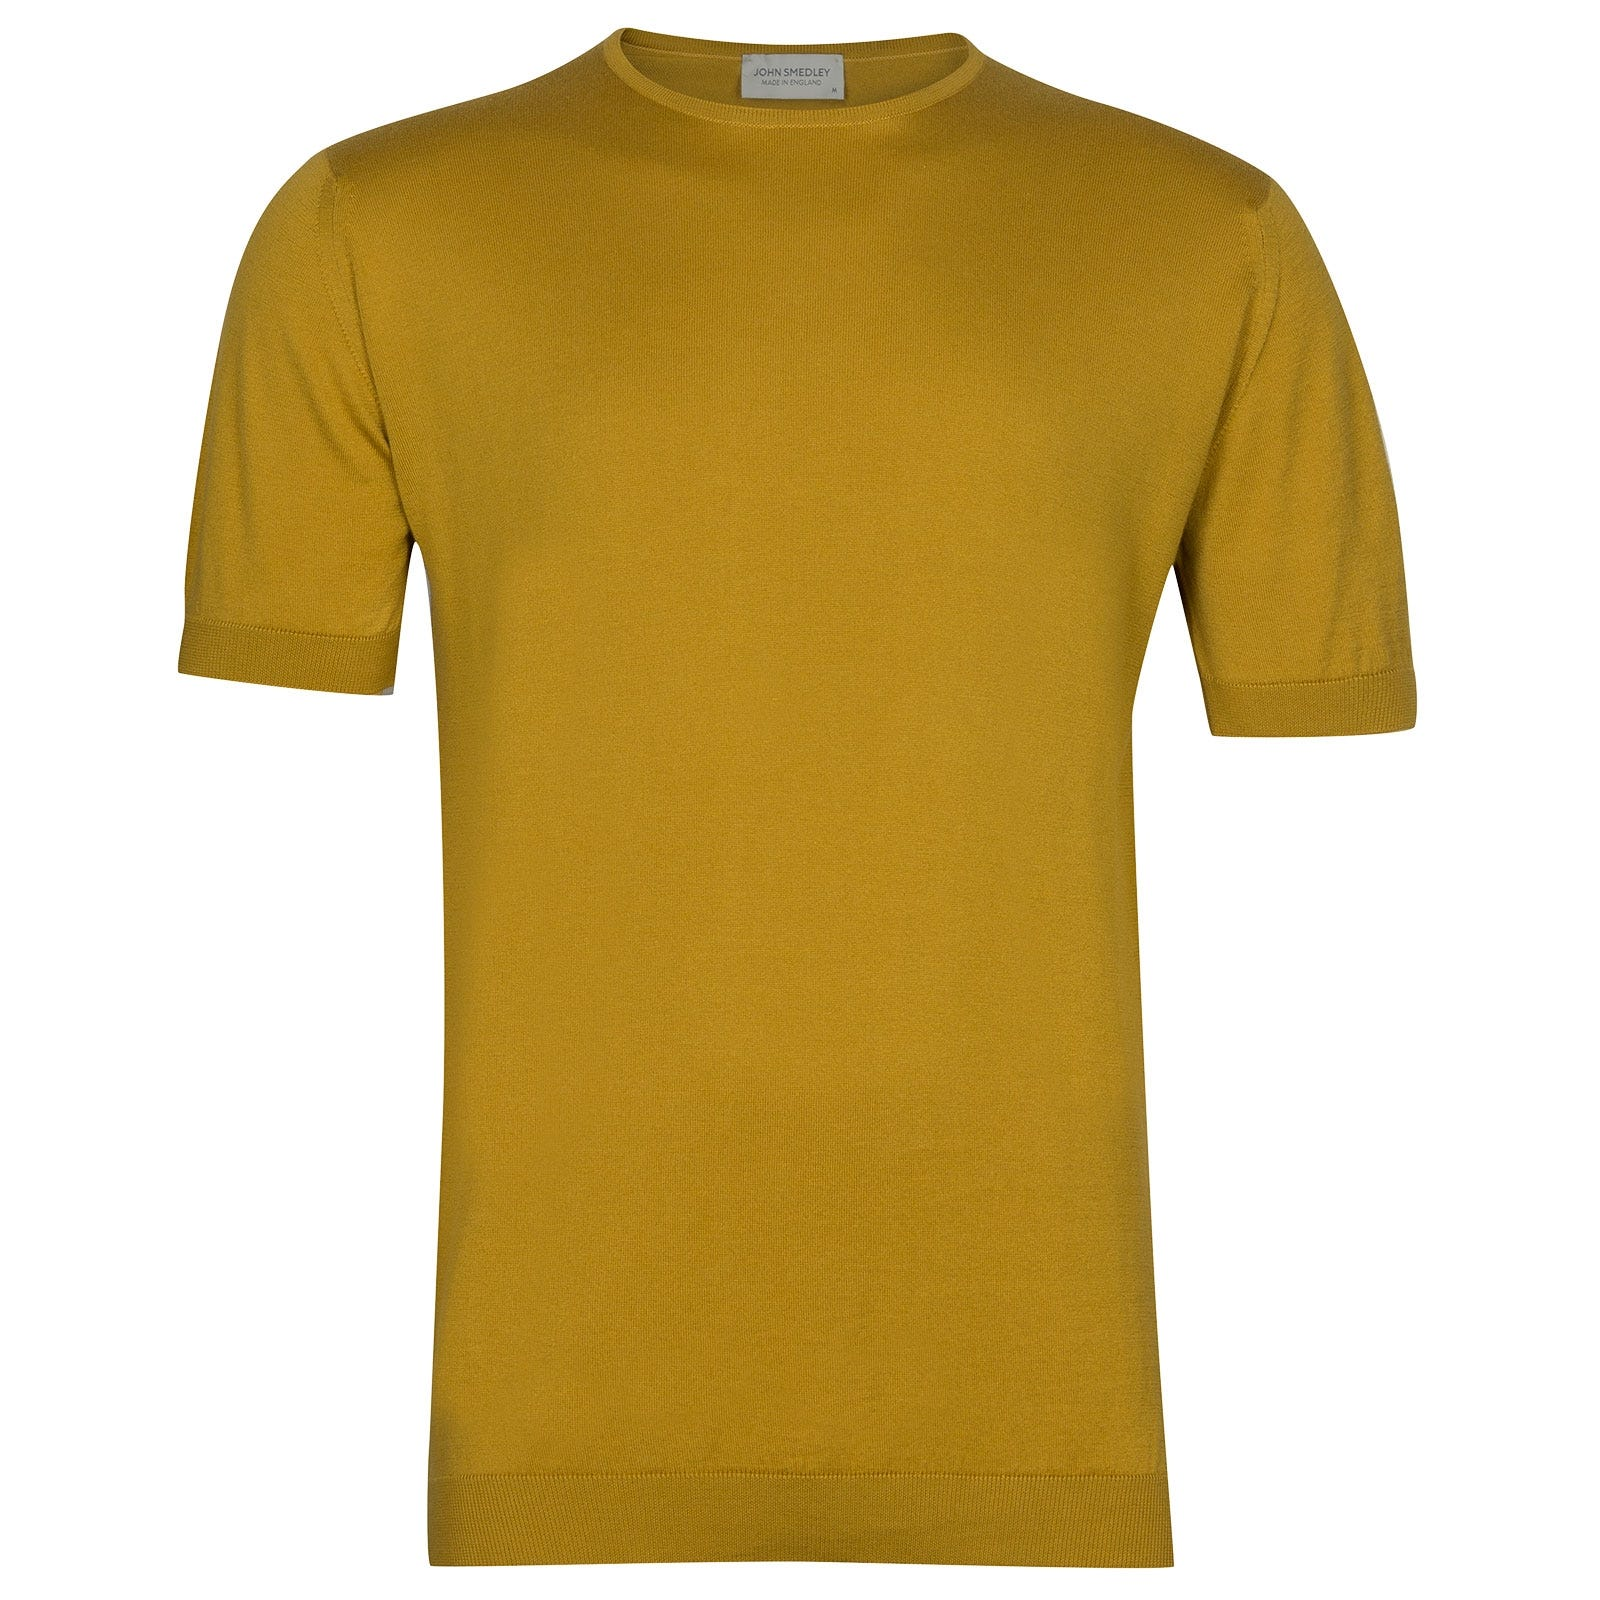 John Smedley Belden in Stamen Yellow T-Shirt-SML